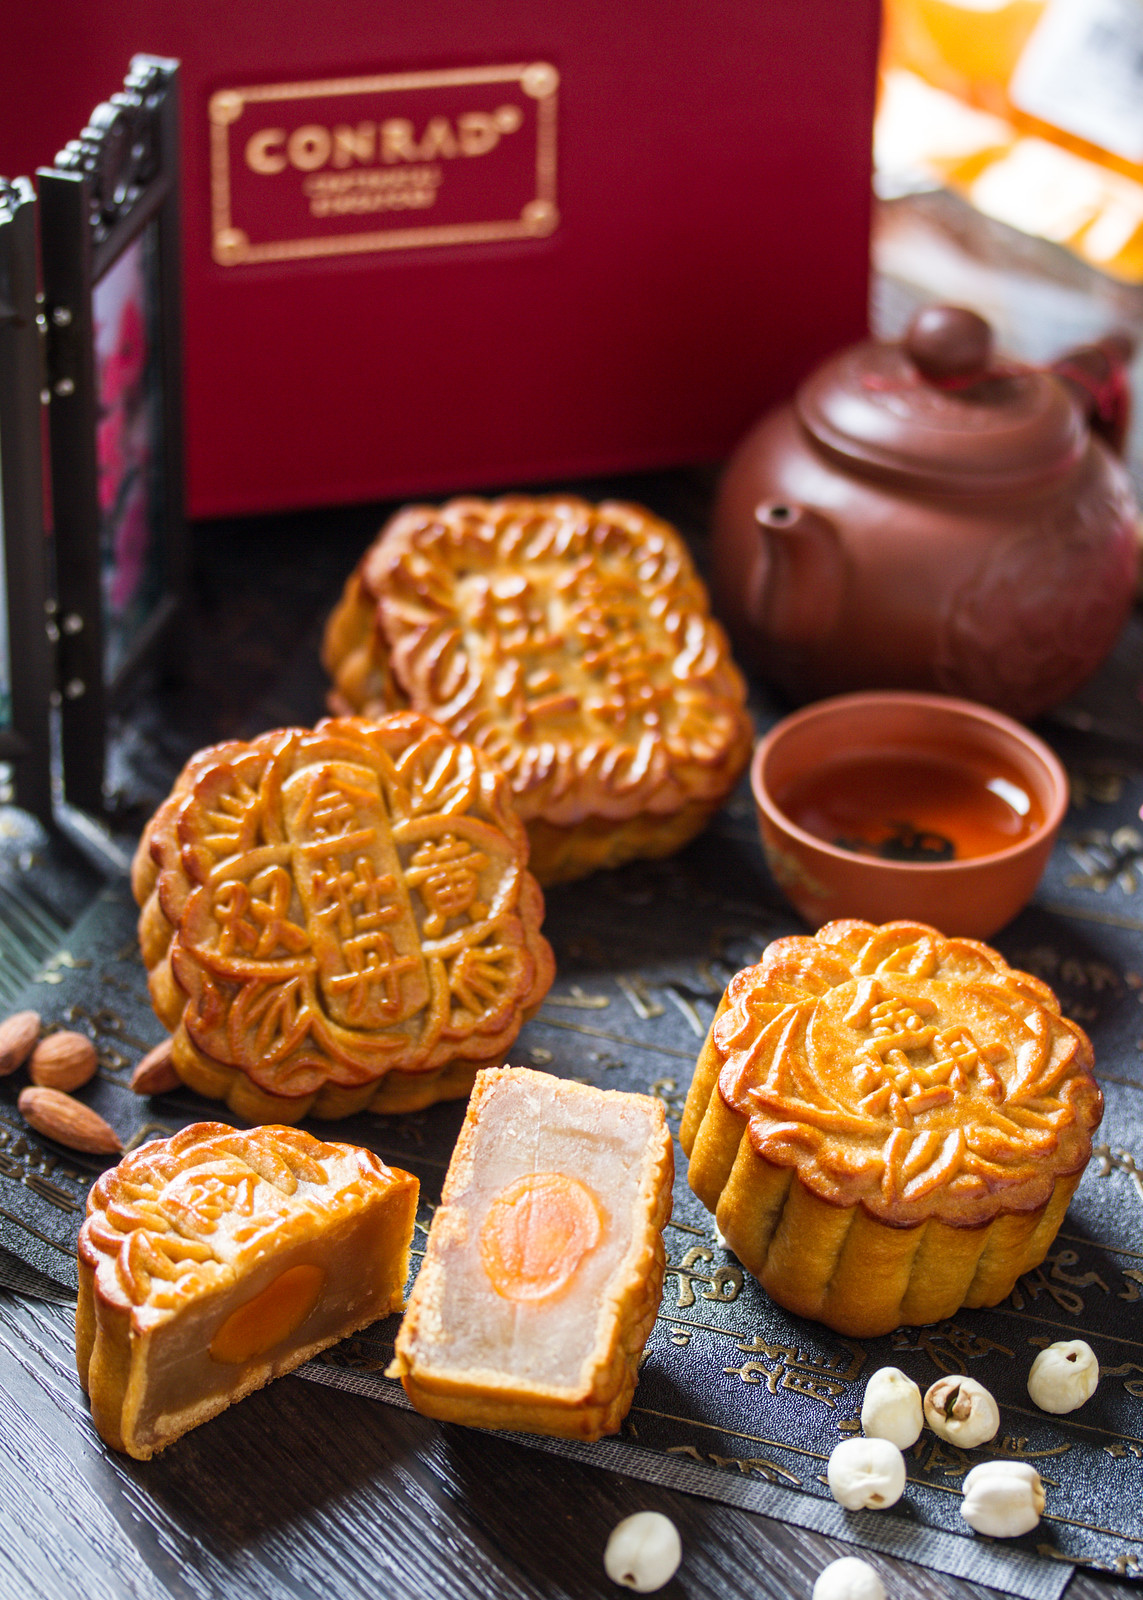 Conrad Centennial Singapore Mooncakes: Golden Peony's Traditional Baked with White Lotus Paste Mooncake and Traditional Baked with Mixed Nuts Mooncake